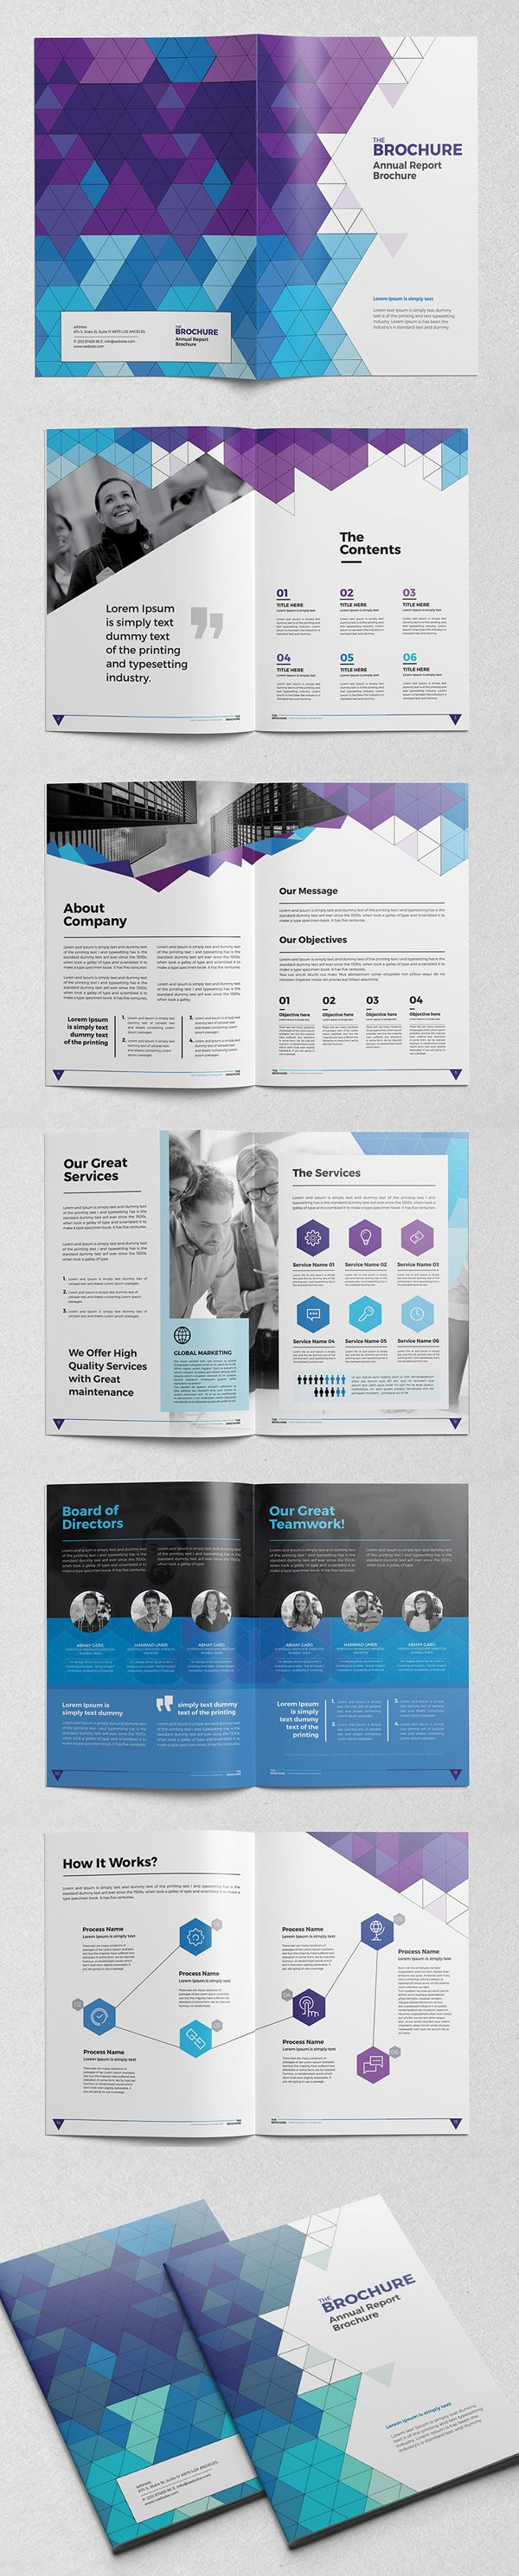 Abstract Brochure Catalog InDesign Template Booklet - Brochure design templates indesign